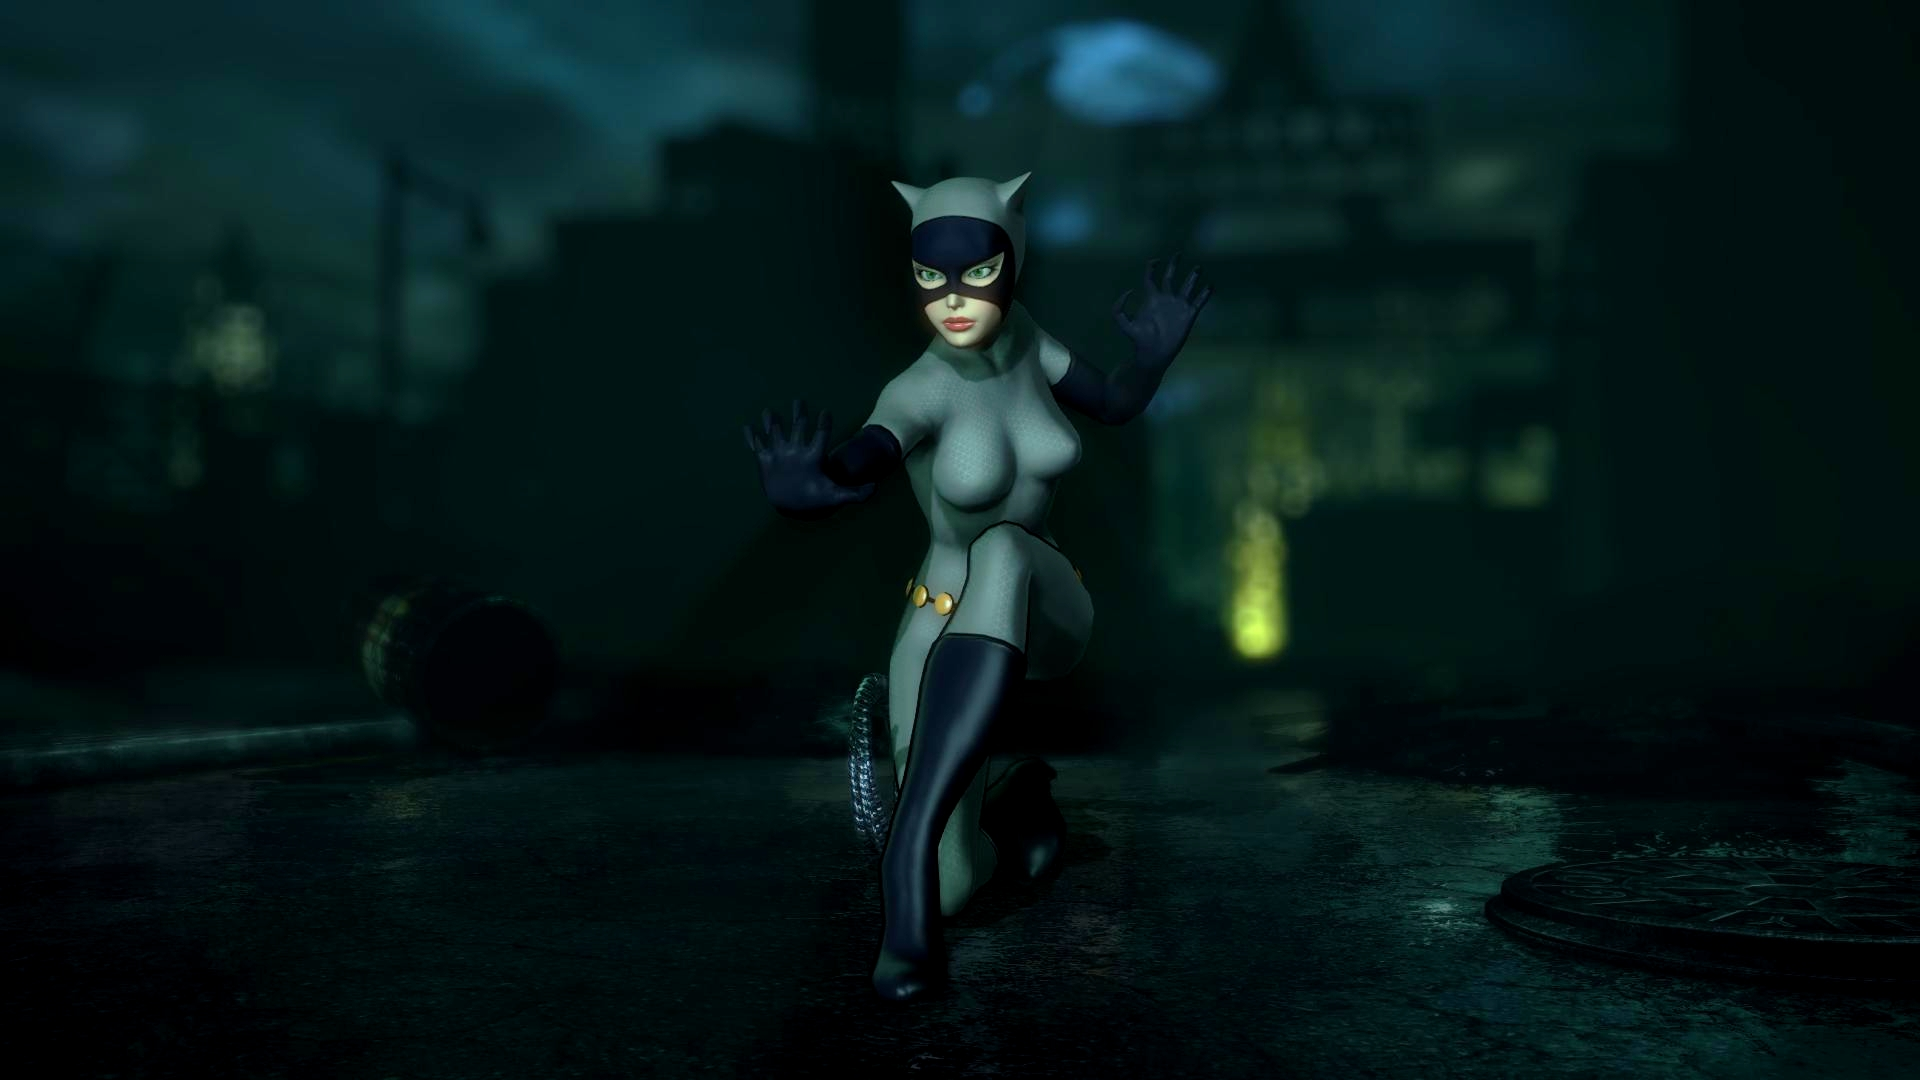 Arkham city cat woman mod naked movie